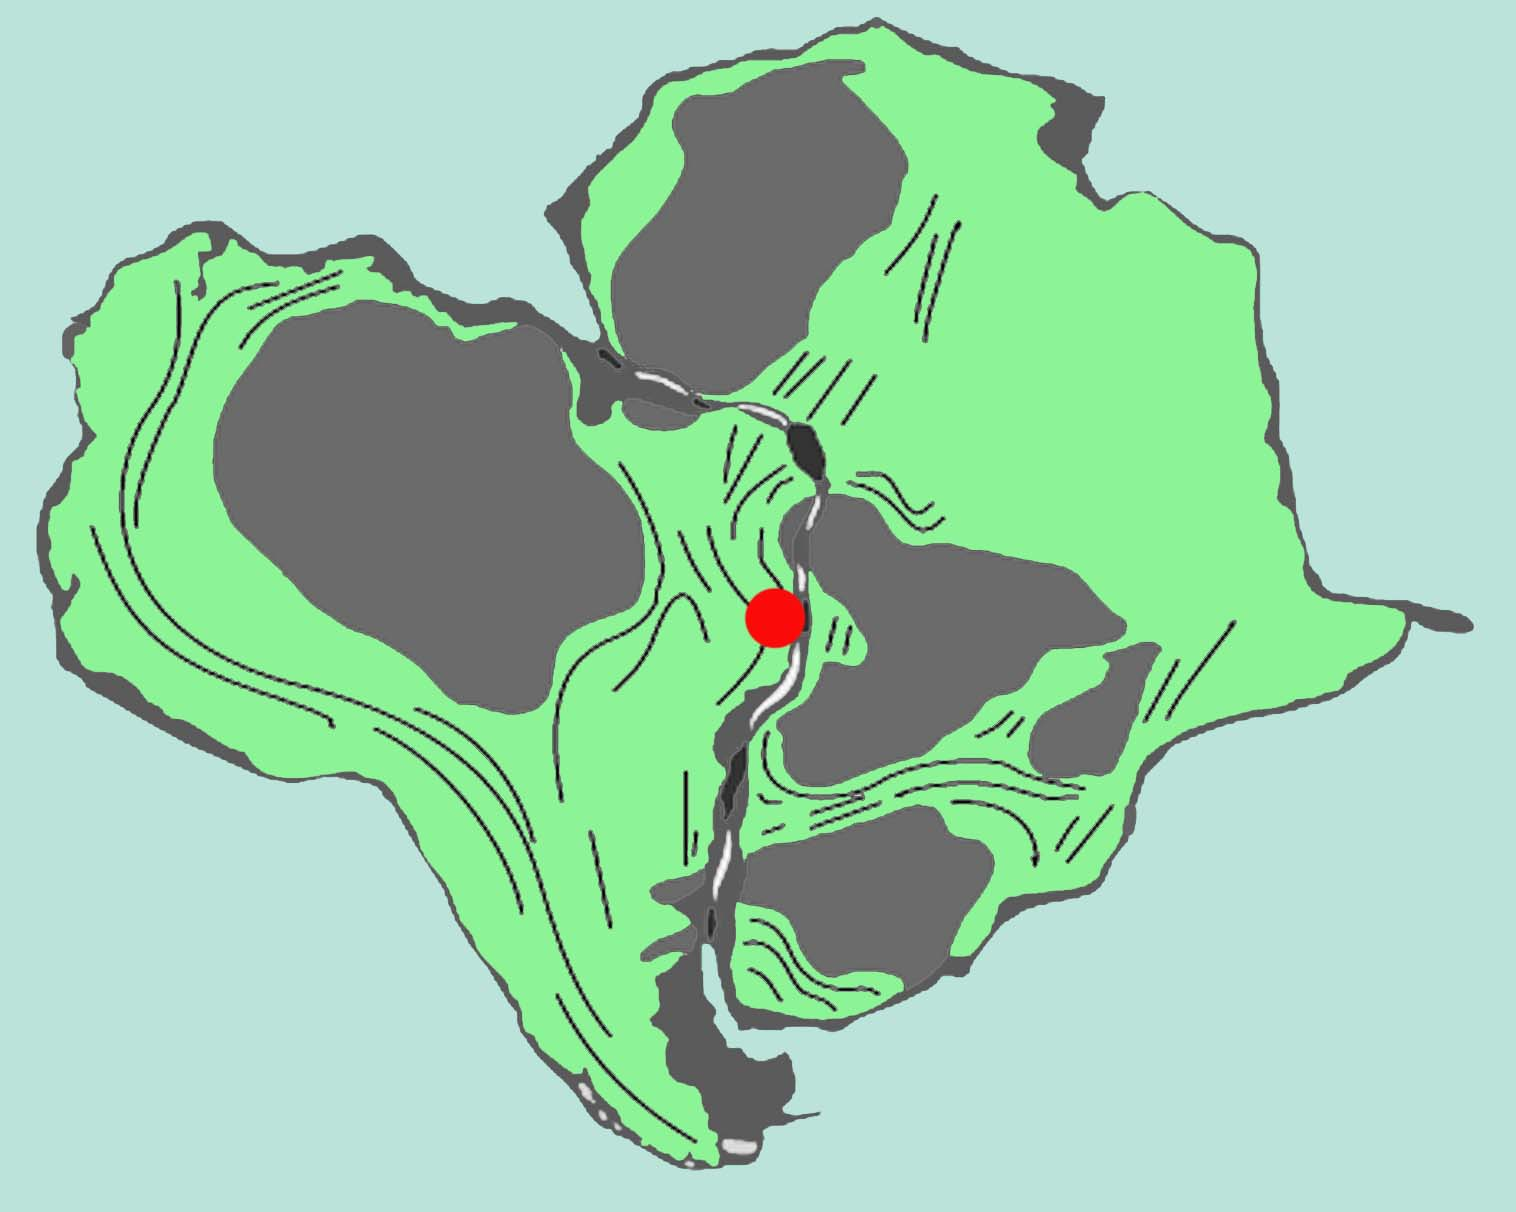 Pangea, the supercontinent